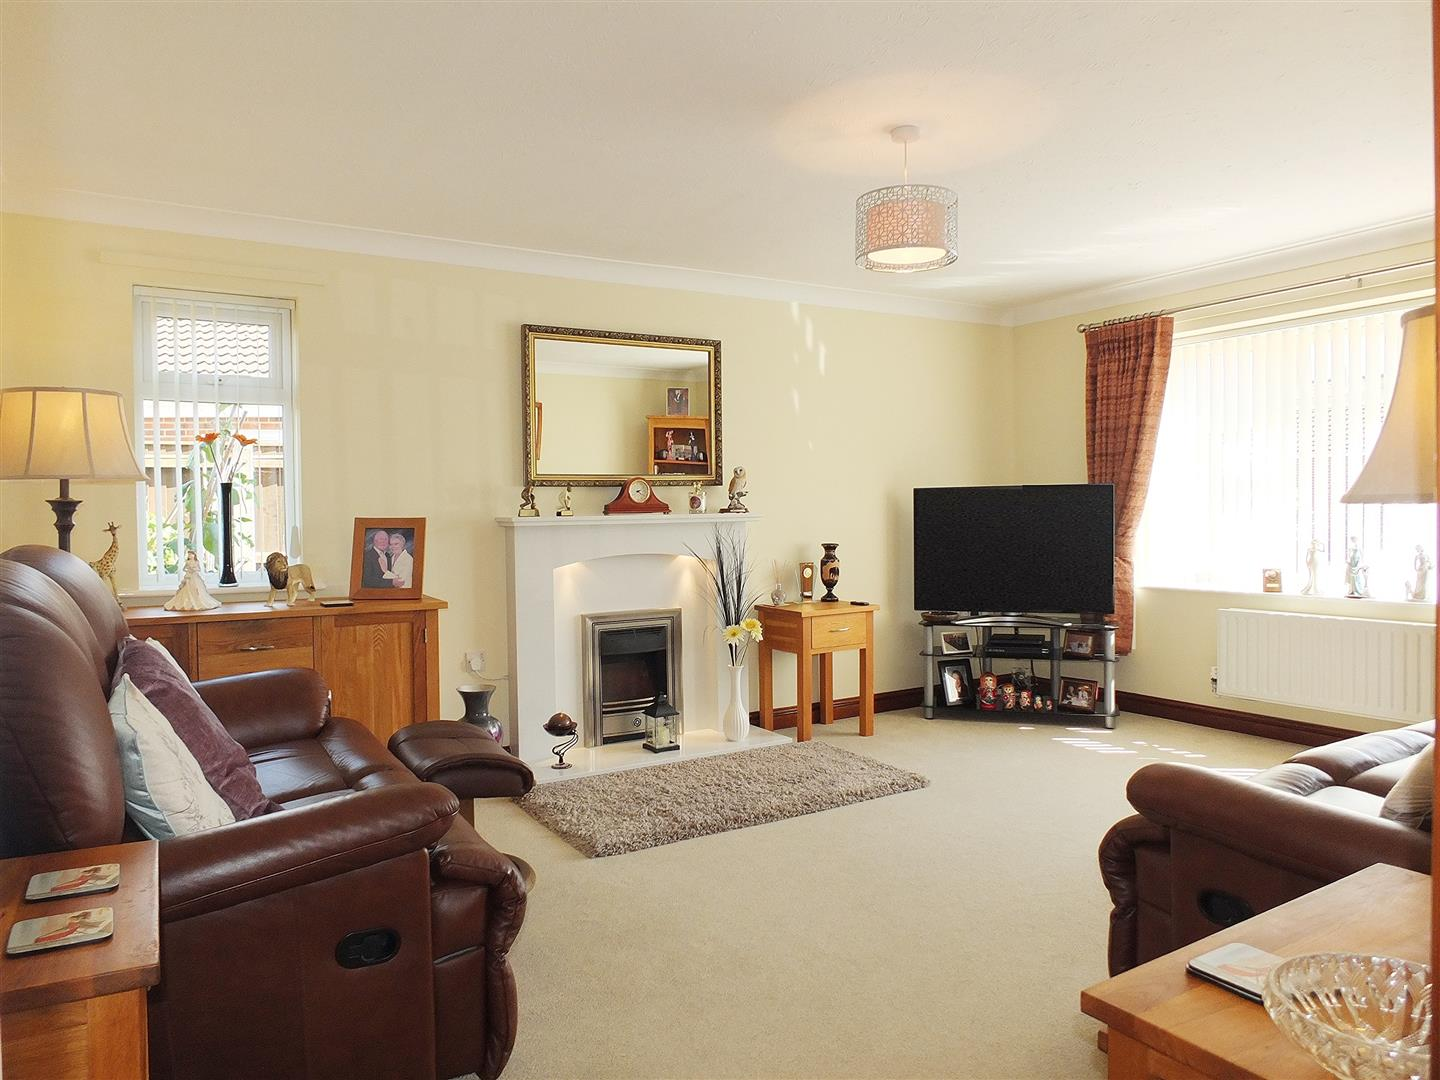 3 bed detached bungalow for sale in Long Sutton Spalding, PE12 9FT  - Property Image 4